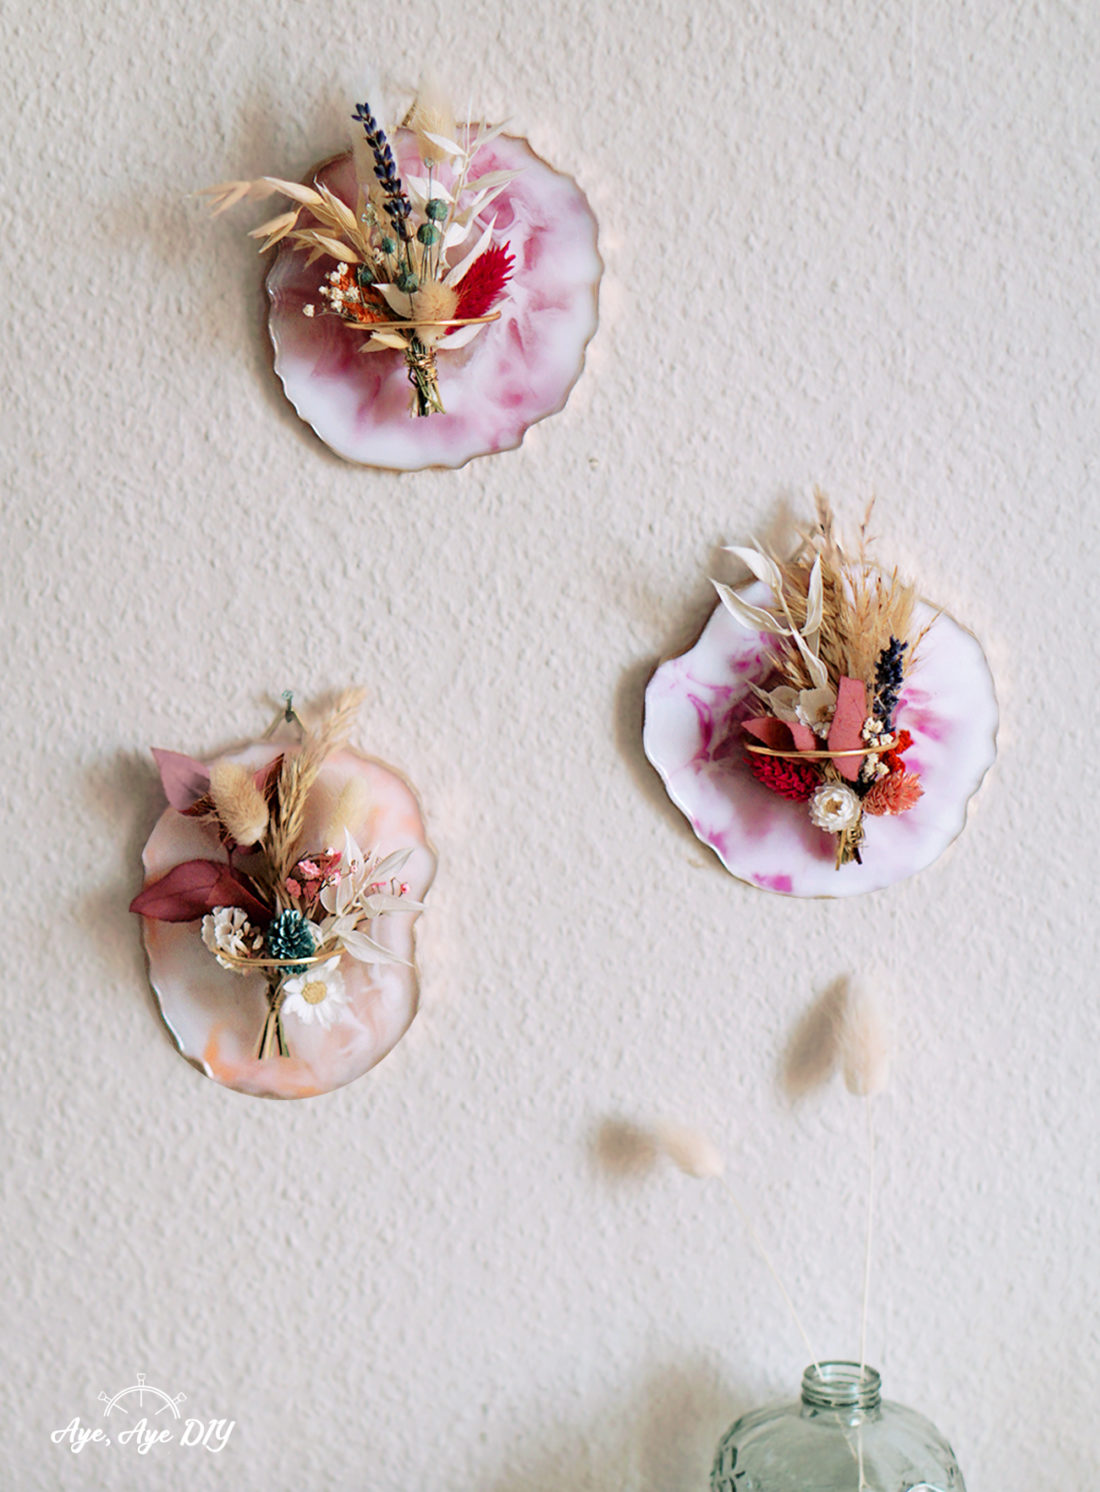 DIY Resin Coaster als Wandbild Herbst DIY Deko